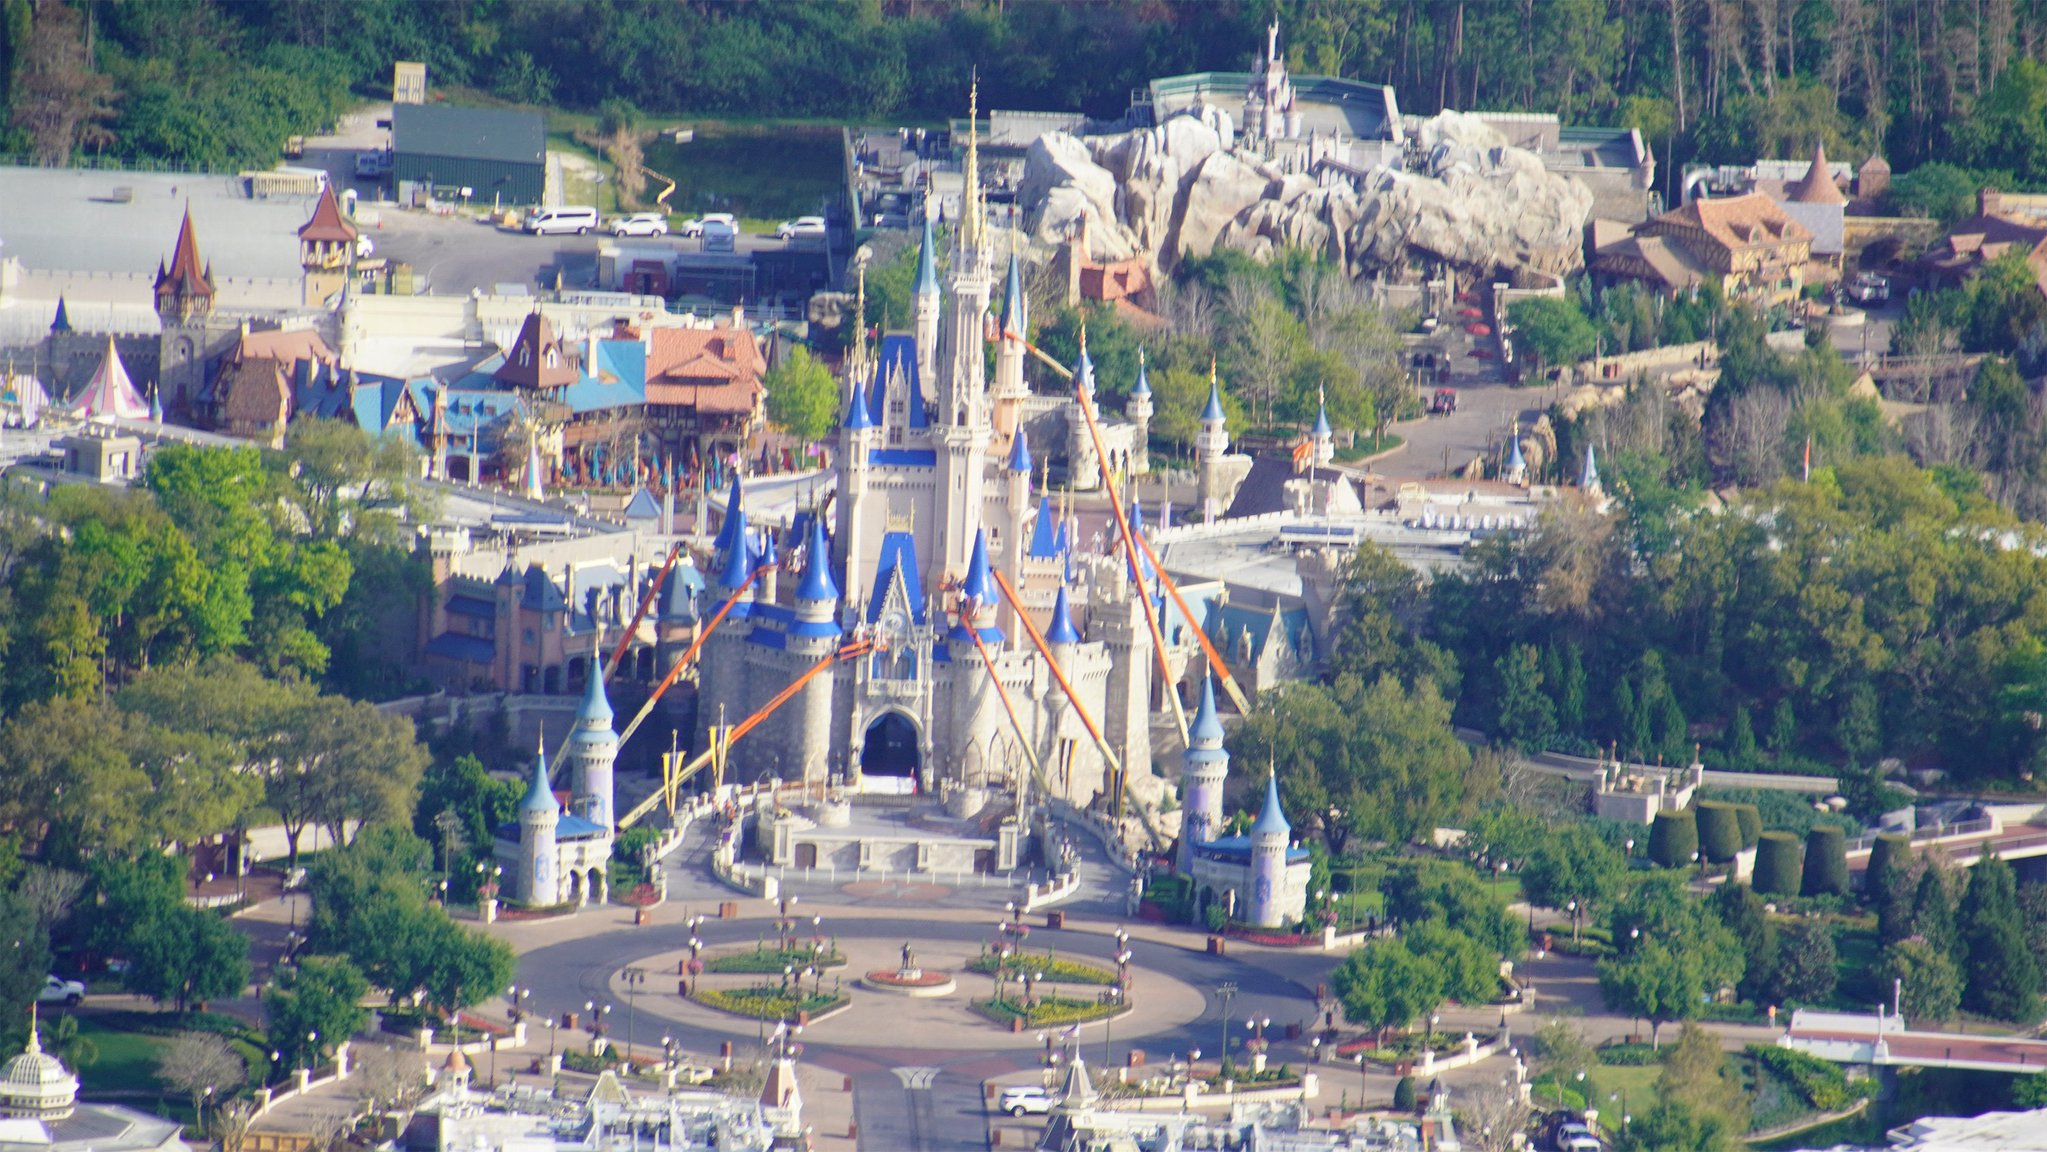 Photos Show Disney World Like We've Never Seen It Before—completely Empty